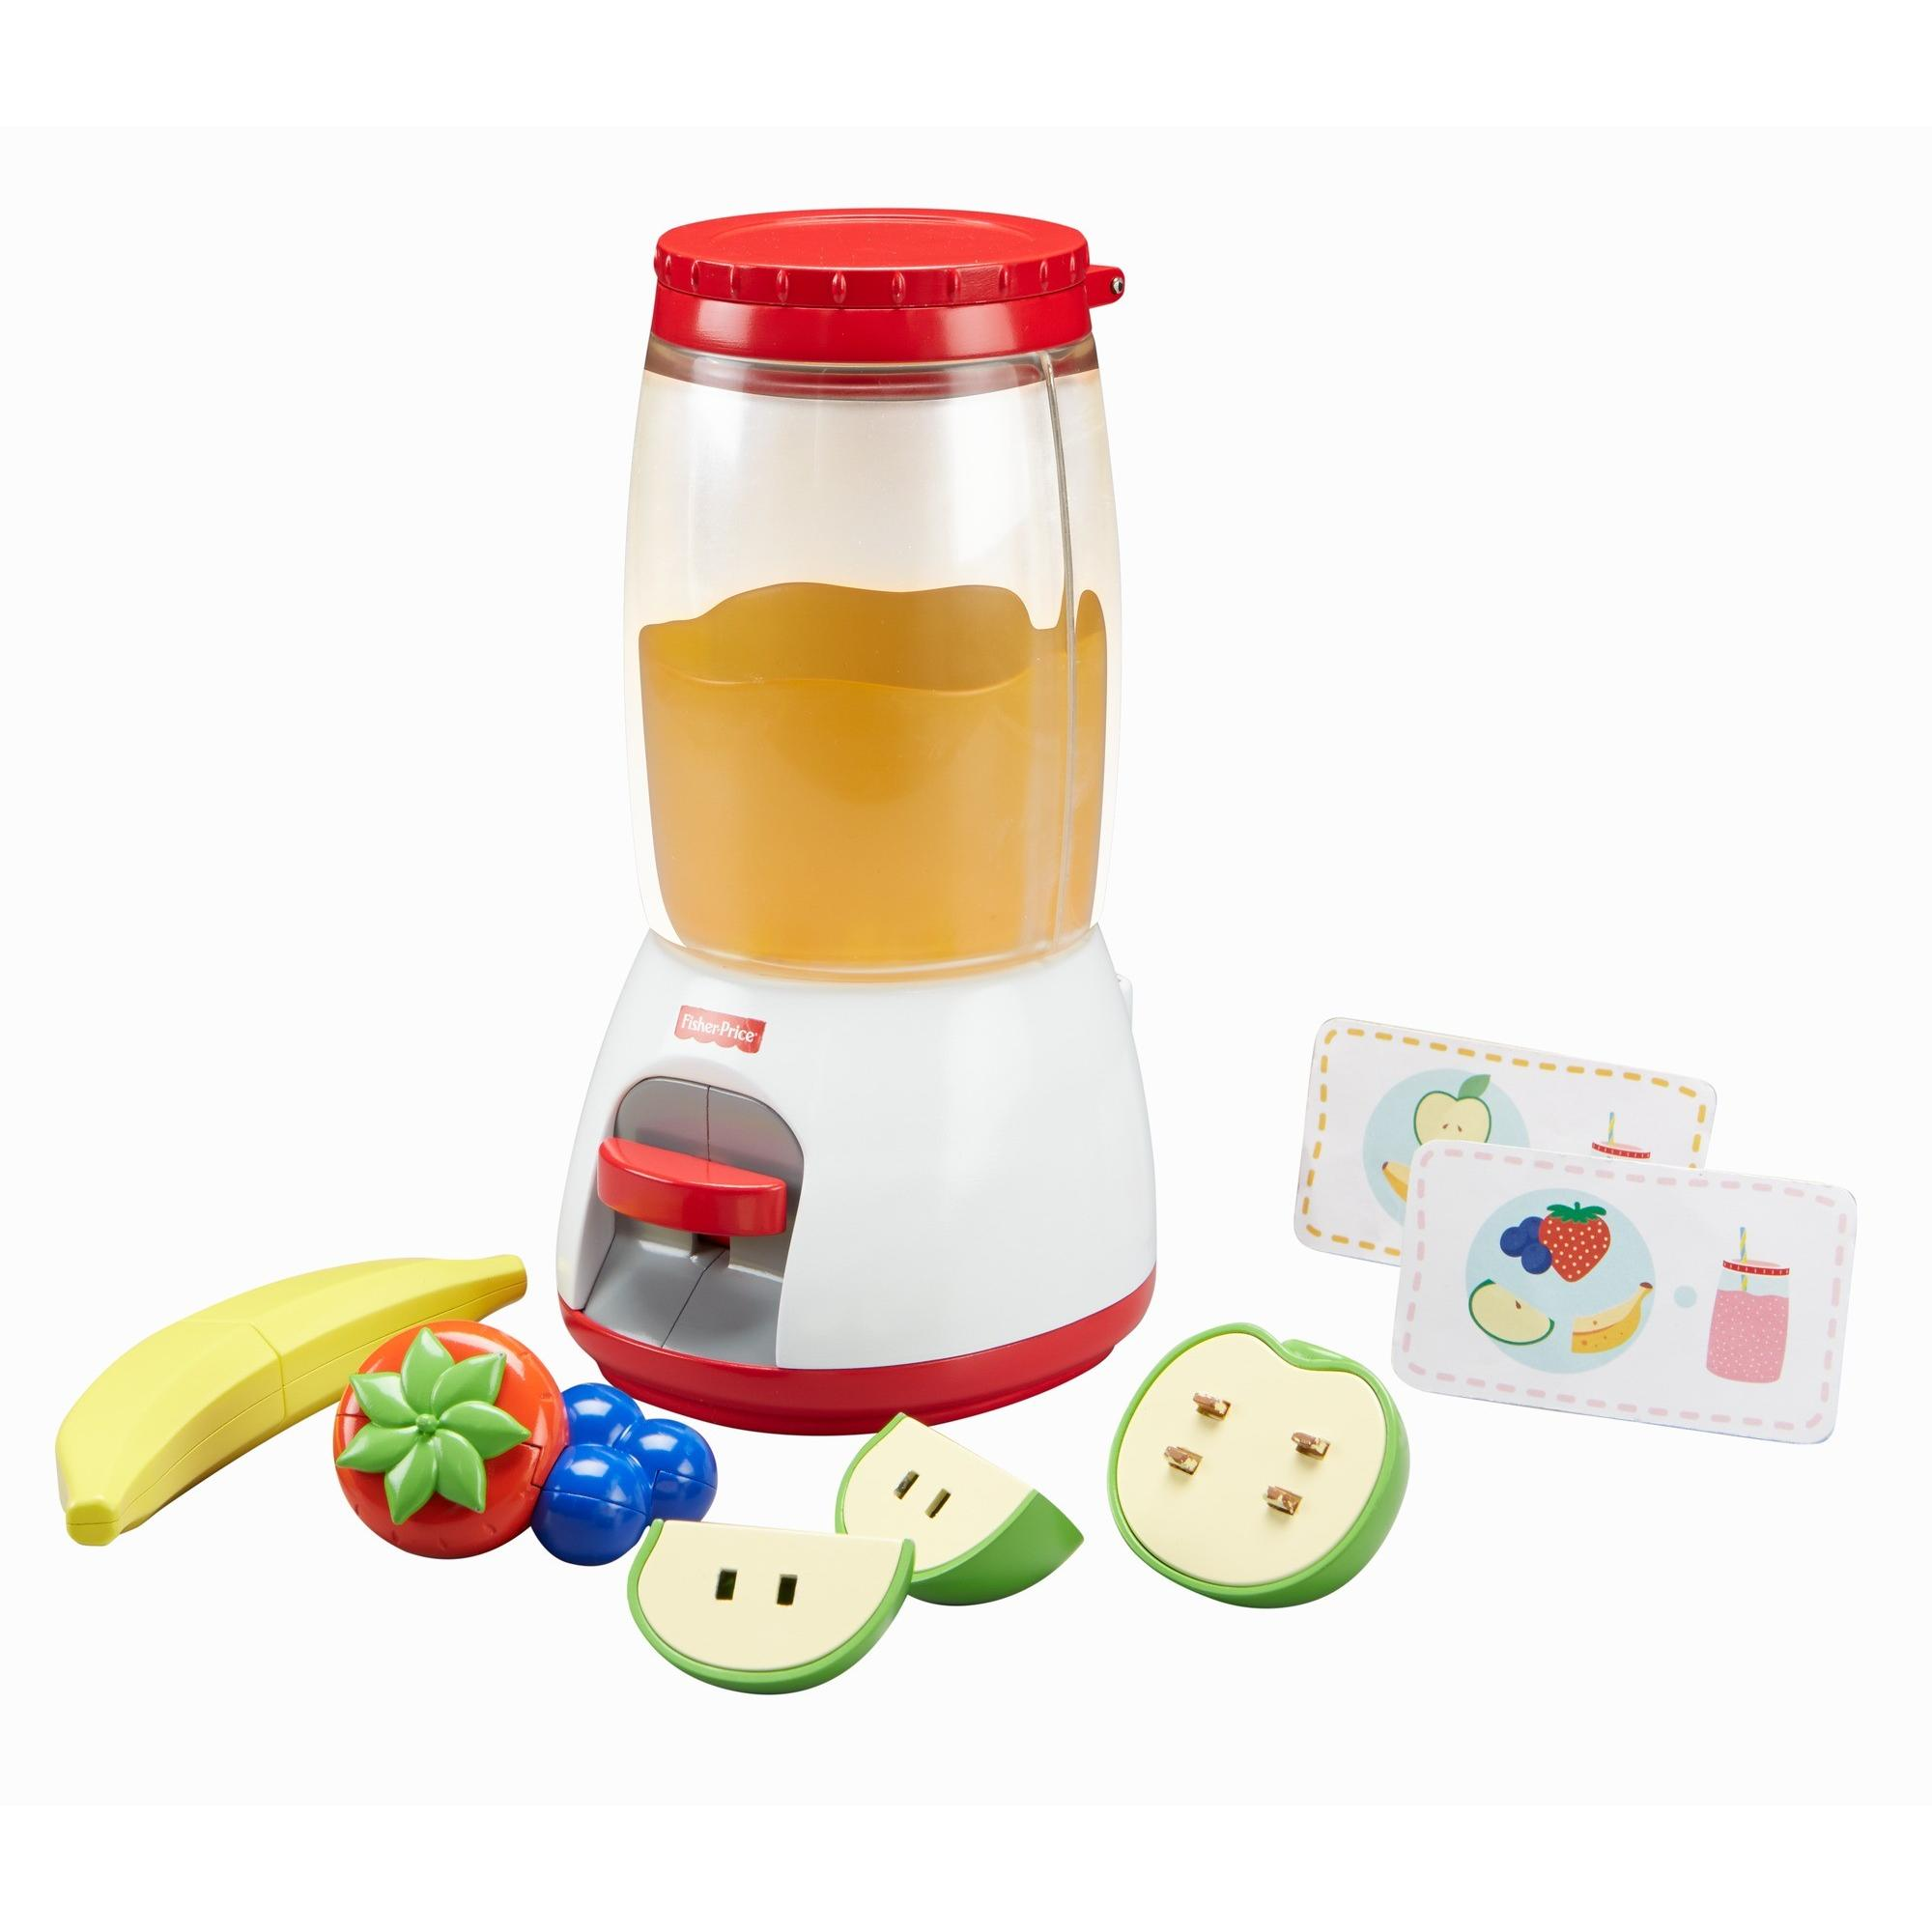 Fisher Price Mix & Serve Smoothie Maker Toy by FISHER PRICE